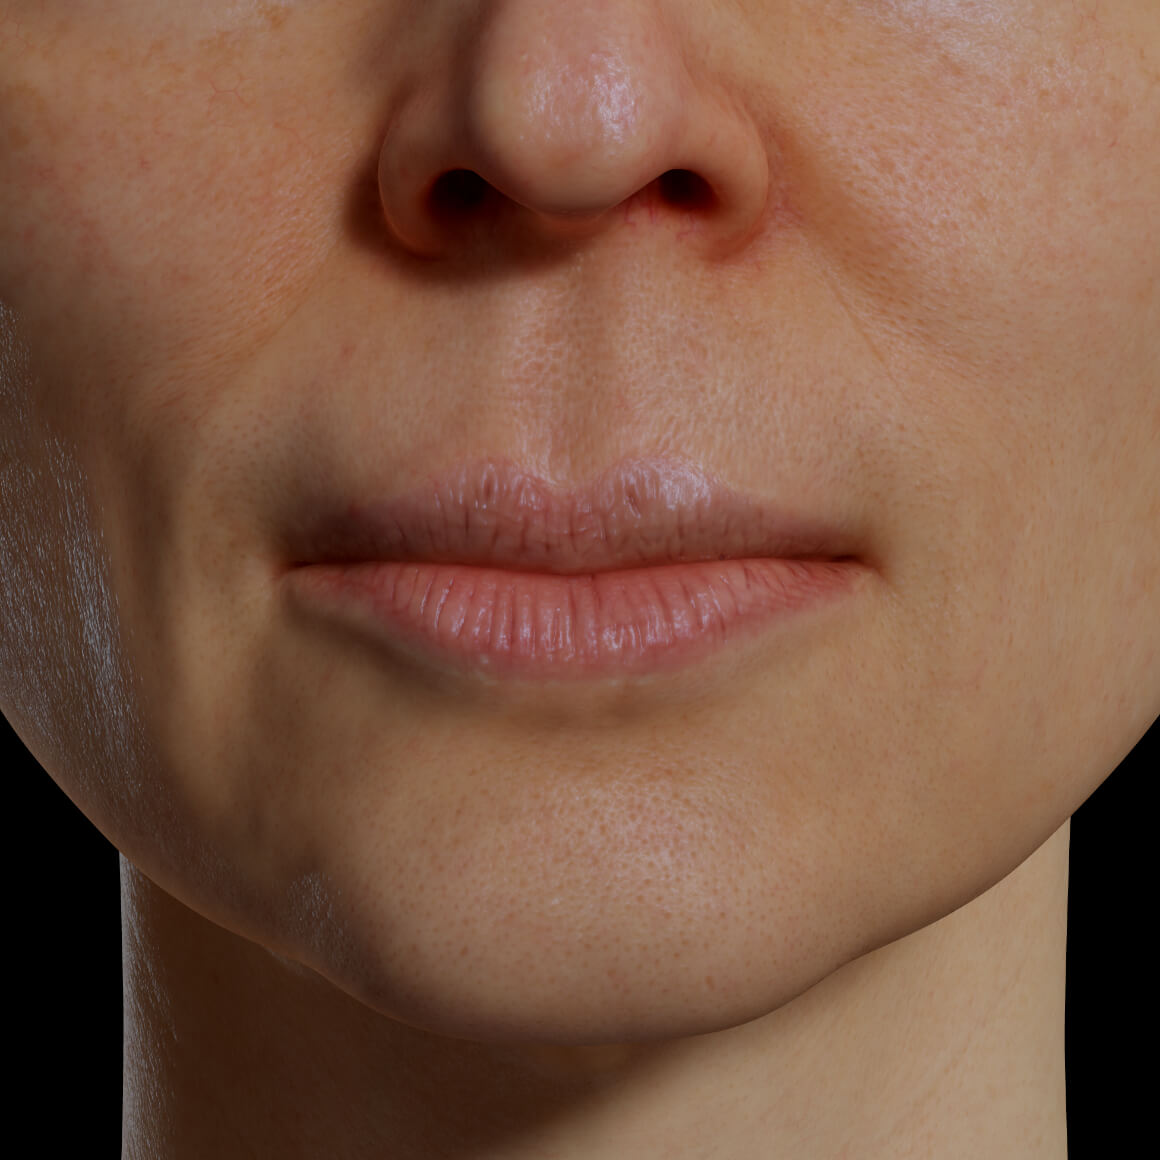 A female patient from the Clinique Chloé facing front showing dry and dehydrated lips